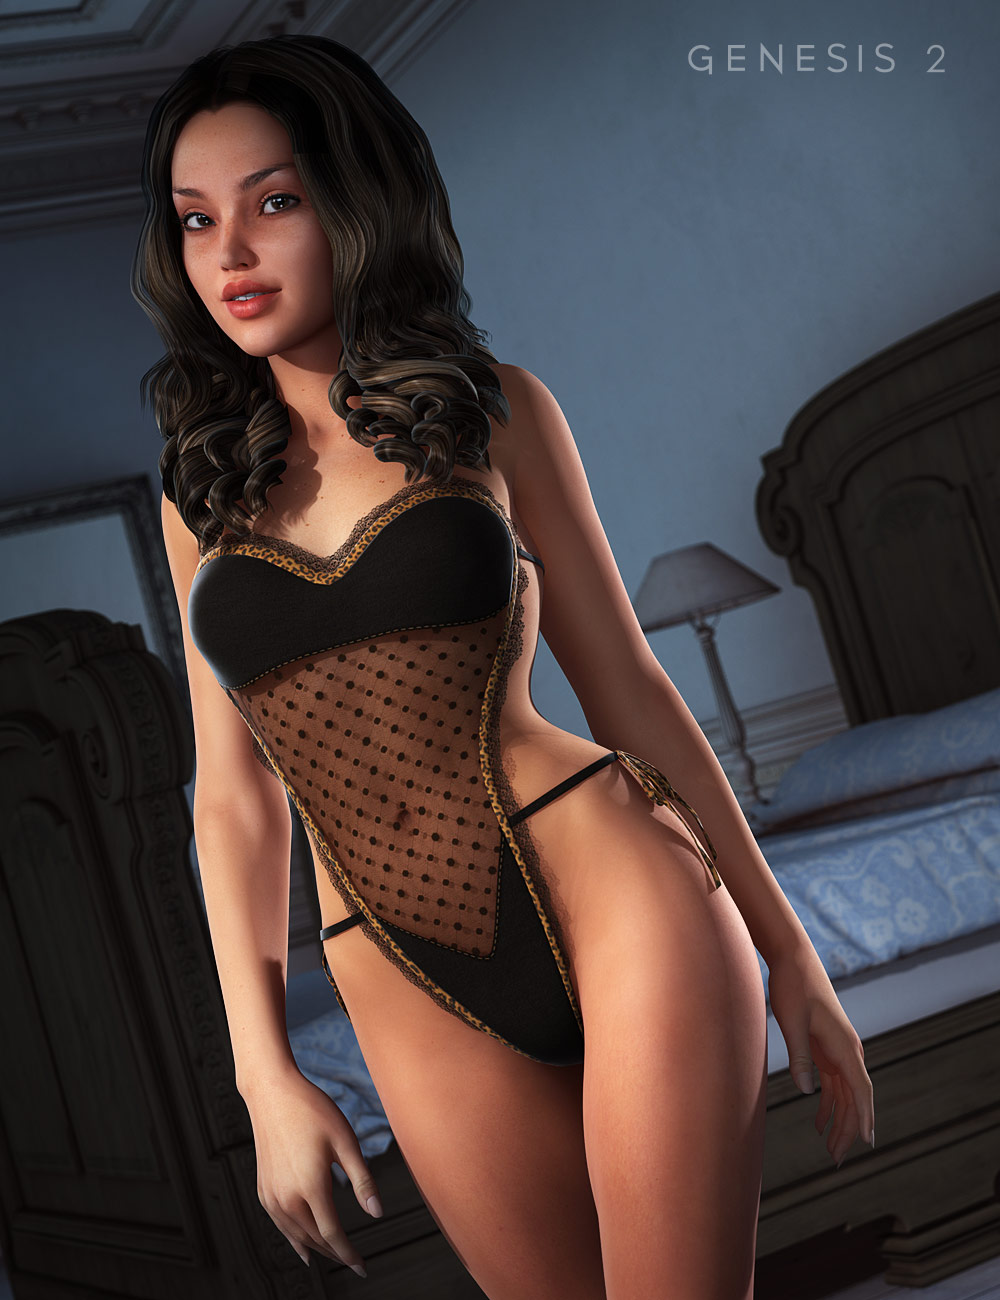 Lacy Teddy Lingerie for Genesis 2 Female(s) by: OziChickXena, 3D Models by Daz 3D